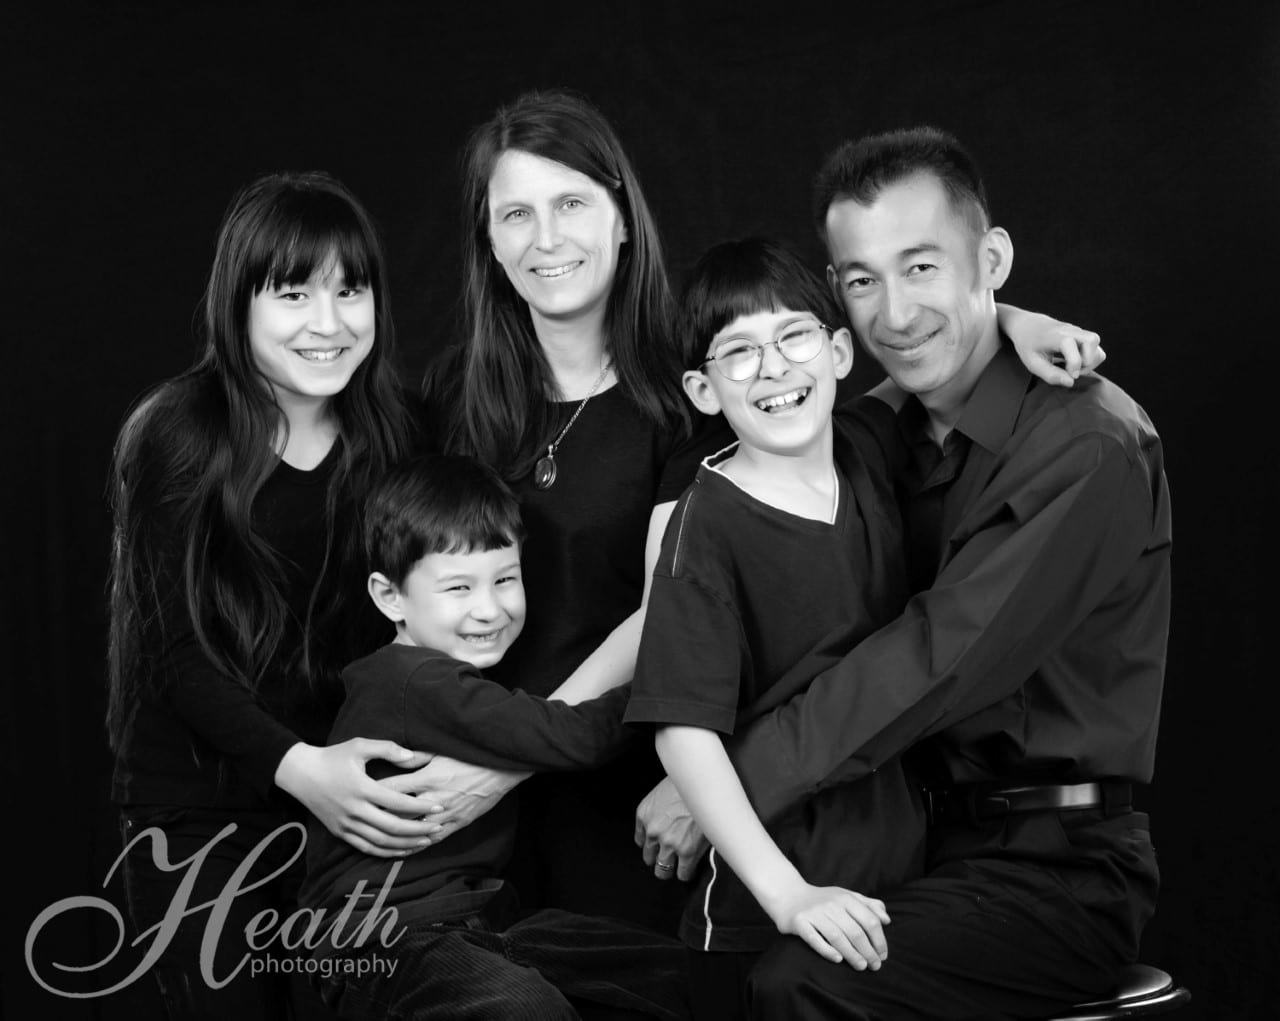 FAMILY SESSION PACKAGE <br/> Donated by: HEATH PHOTOGRAPHY <br/> Valued at: $390